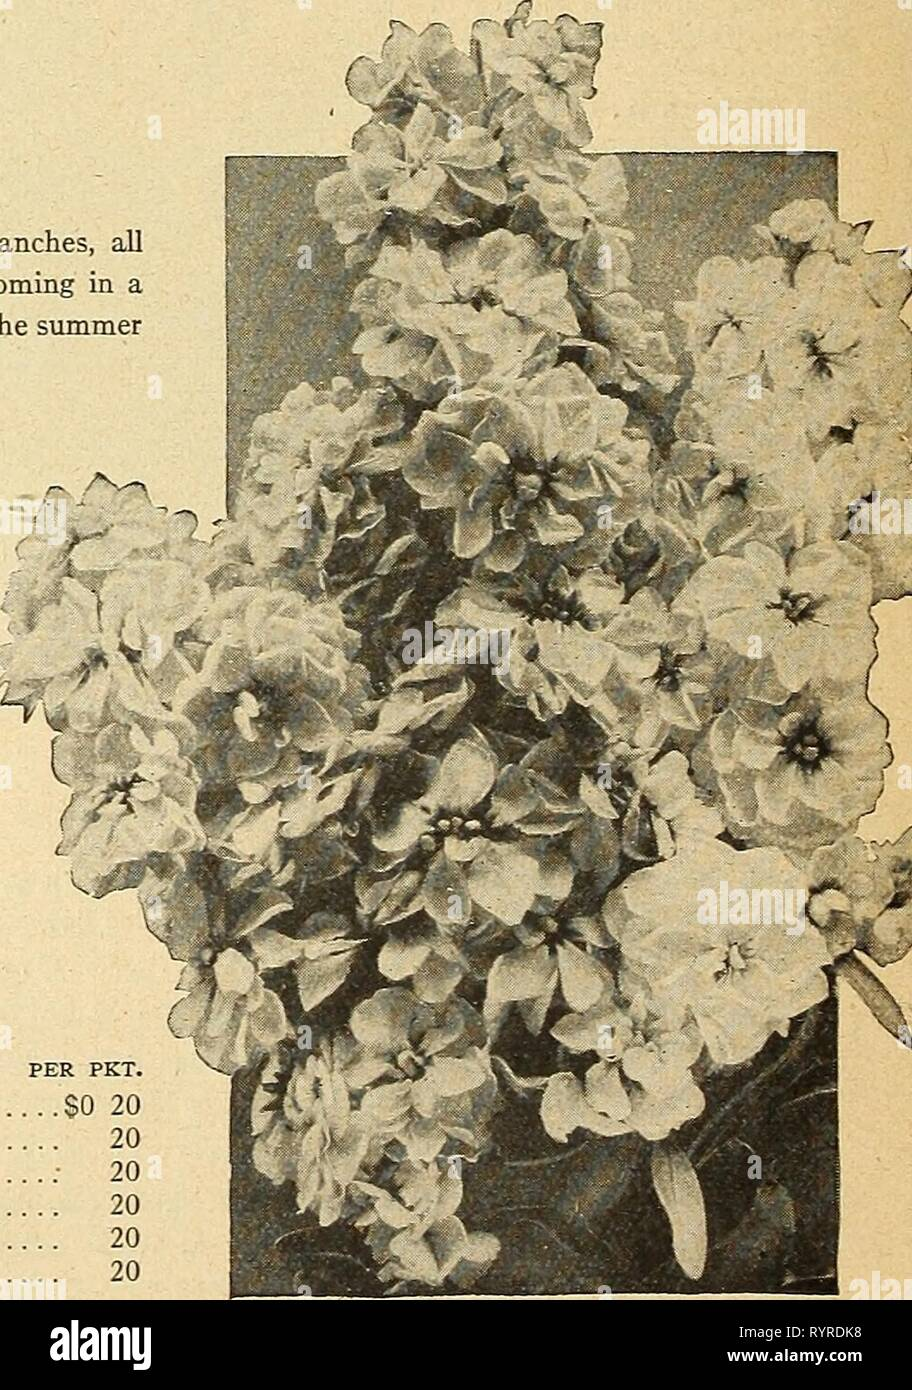 Dreer's midsummer list 1926 (1926) Dreer's midsummer list 1926 . dreersmidsummerl1926henr Year: 1926  Schizanthus â _ (Butterfly or Fringe Flower) This is one of the airiest and daintiest flowers imaginable, especially adapted to bordering beds of taller flowers and those of a heavier growth. The seeds germinate quickly and come into bloom in a few weeks from sowing. The florescence is such as to completely obscure the foliage, making the plant a veritable pyramid of the most delicate and charming bloom. The Schizanthus make admirable pot plants for the house in late winter and early spring. F - Stock Image